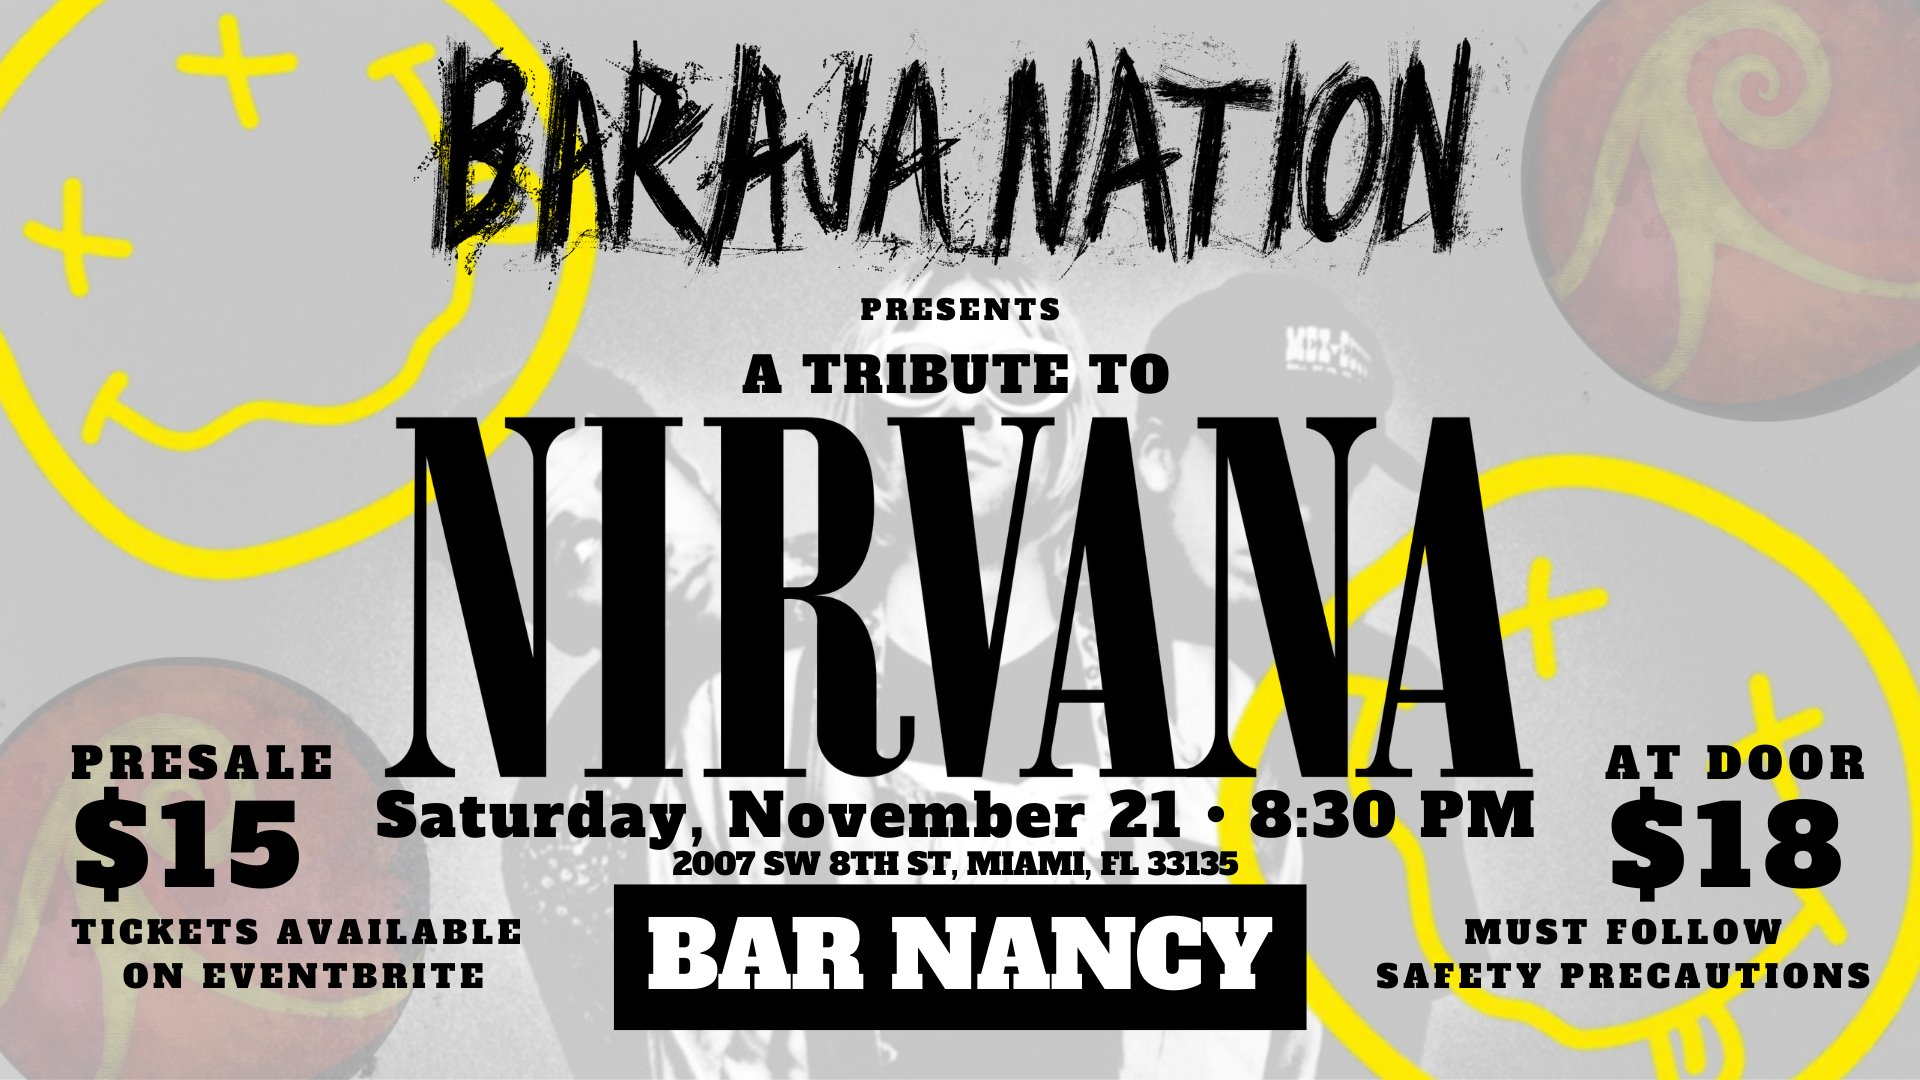 A TRIBUTE TO NIRVANA PRESENTED BY BARAJA NATION